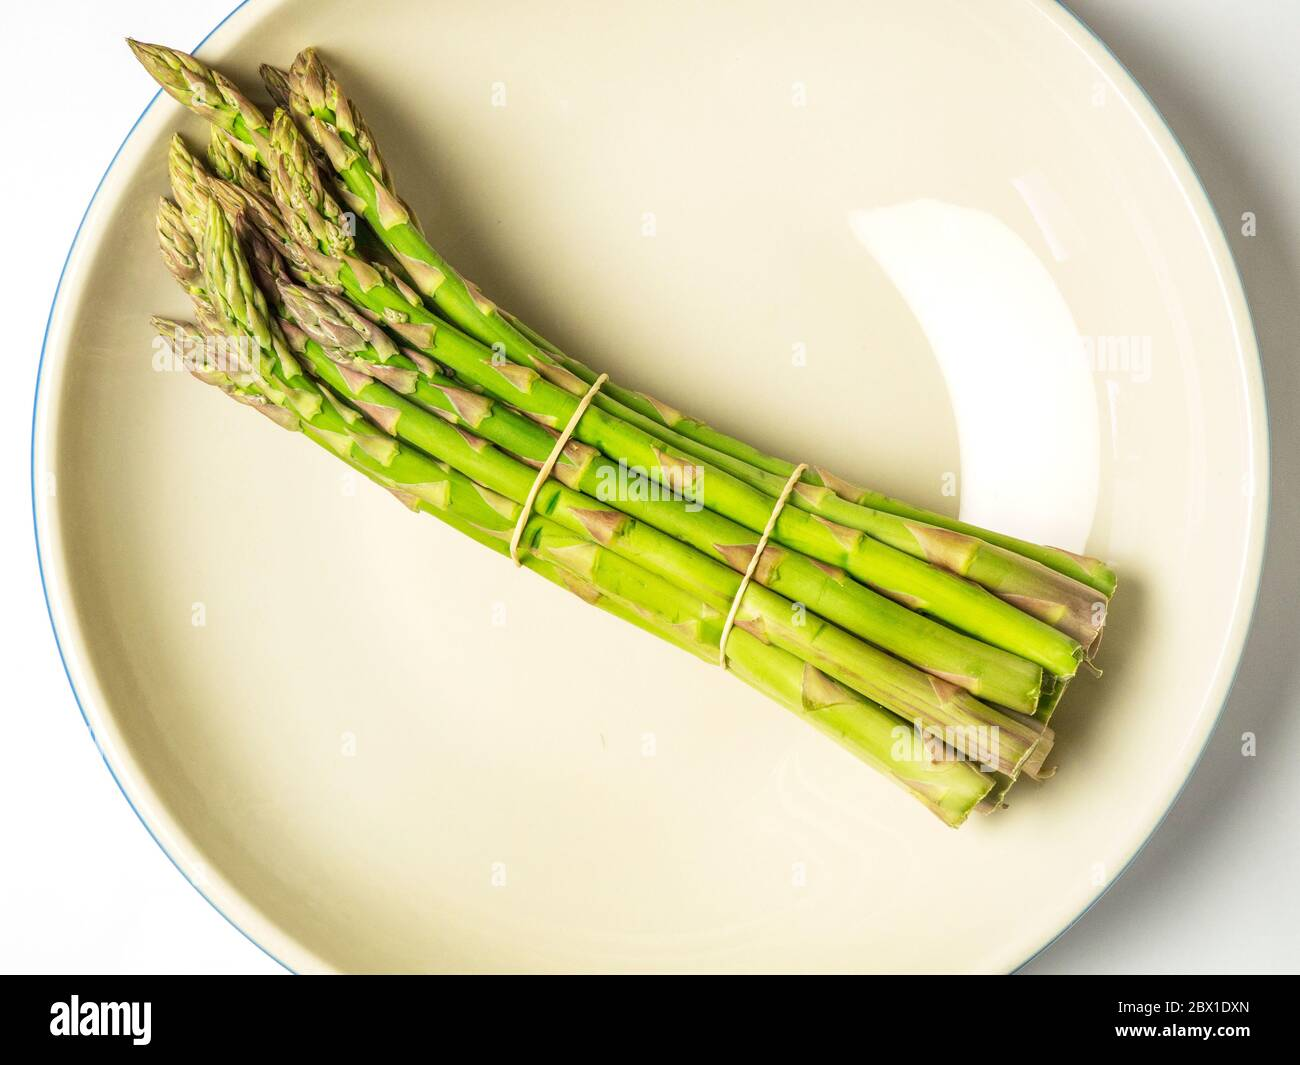 A bunch of asparagus spears in a bowl on a white background Stock Photo